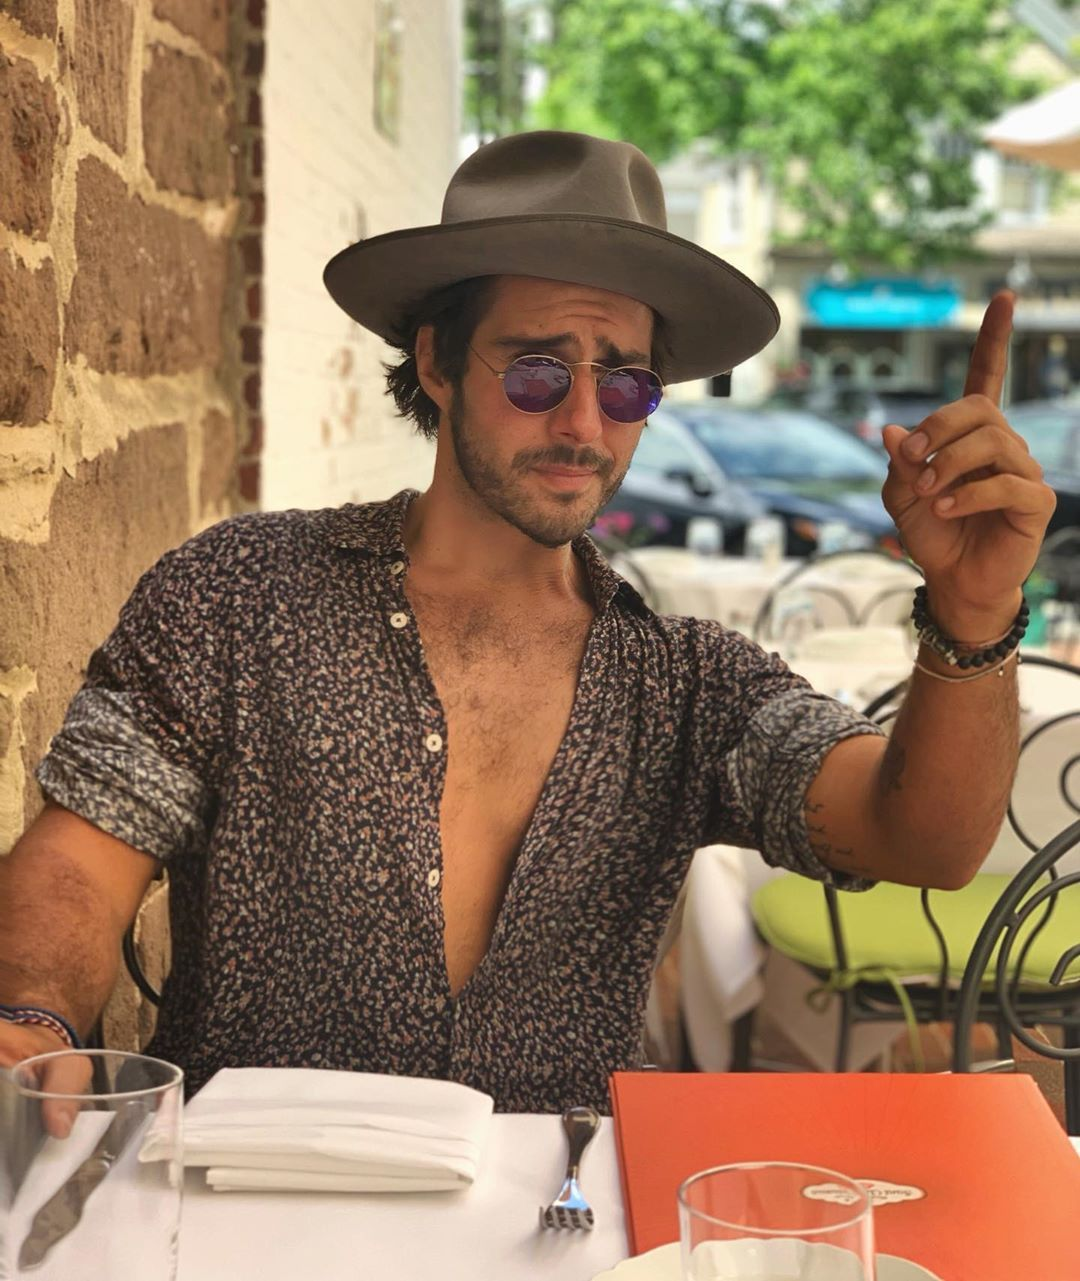 Image may contain: Made in Chelsea heirs, Made in Chelsea, MIC, family, fortunes, money, business, company, worth, cash, inheritance, Alik Alfus, Restaurant, Finger, Accessories, Sunglasses, Accessory, Clothing, Apparel, Hat, Human, Person